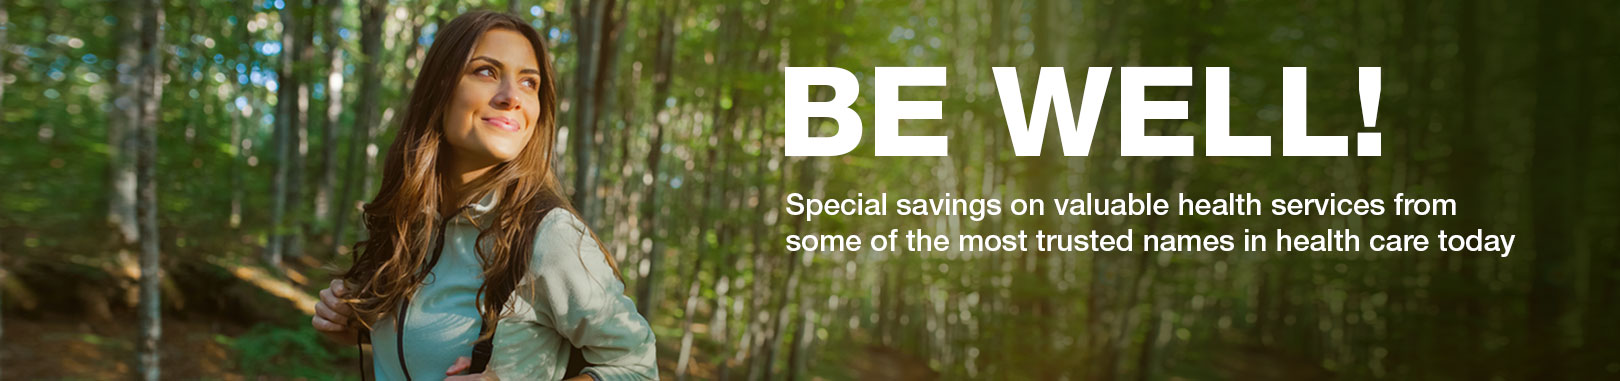 BE WELL! Special savings on valuable health services from some of the most trusted names in health care today